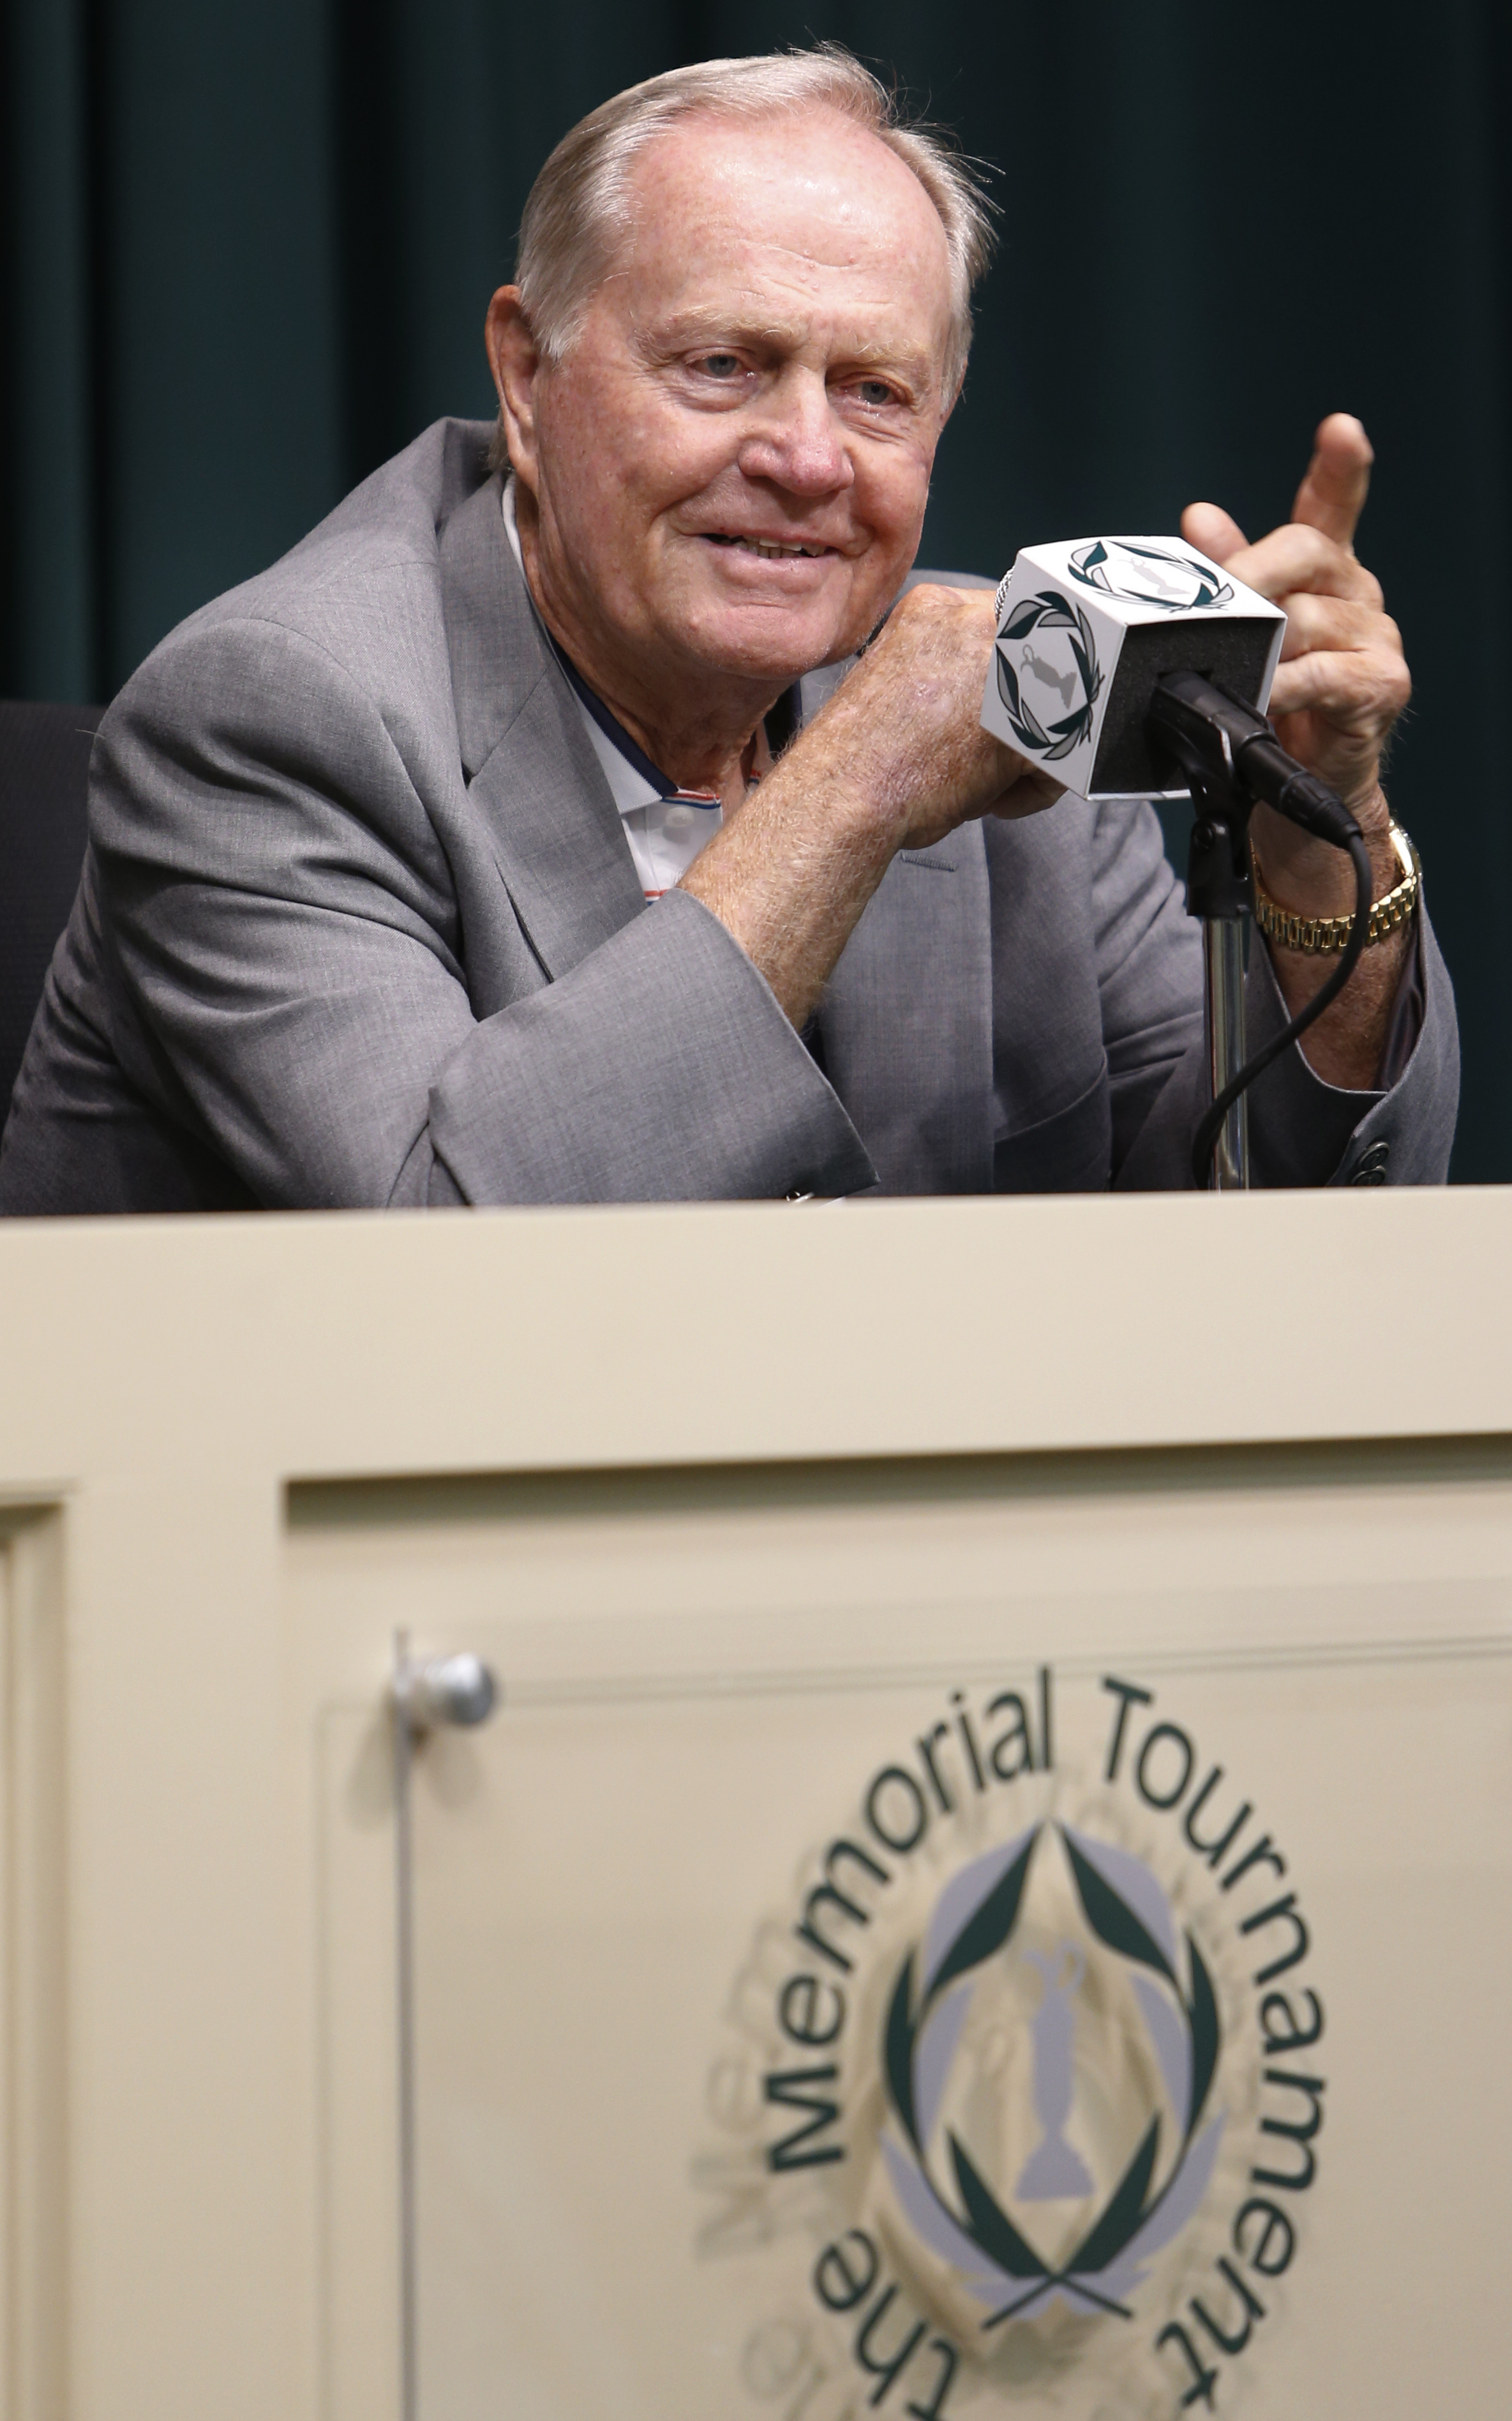 Jack Nicklaus answers questions during a news conference a few days before the start of the Memorial golf tournament Tuesday, May 30, 2017, in Dublin, Ohio. (AP Photo/Jay LaPrete)